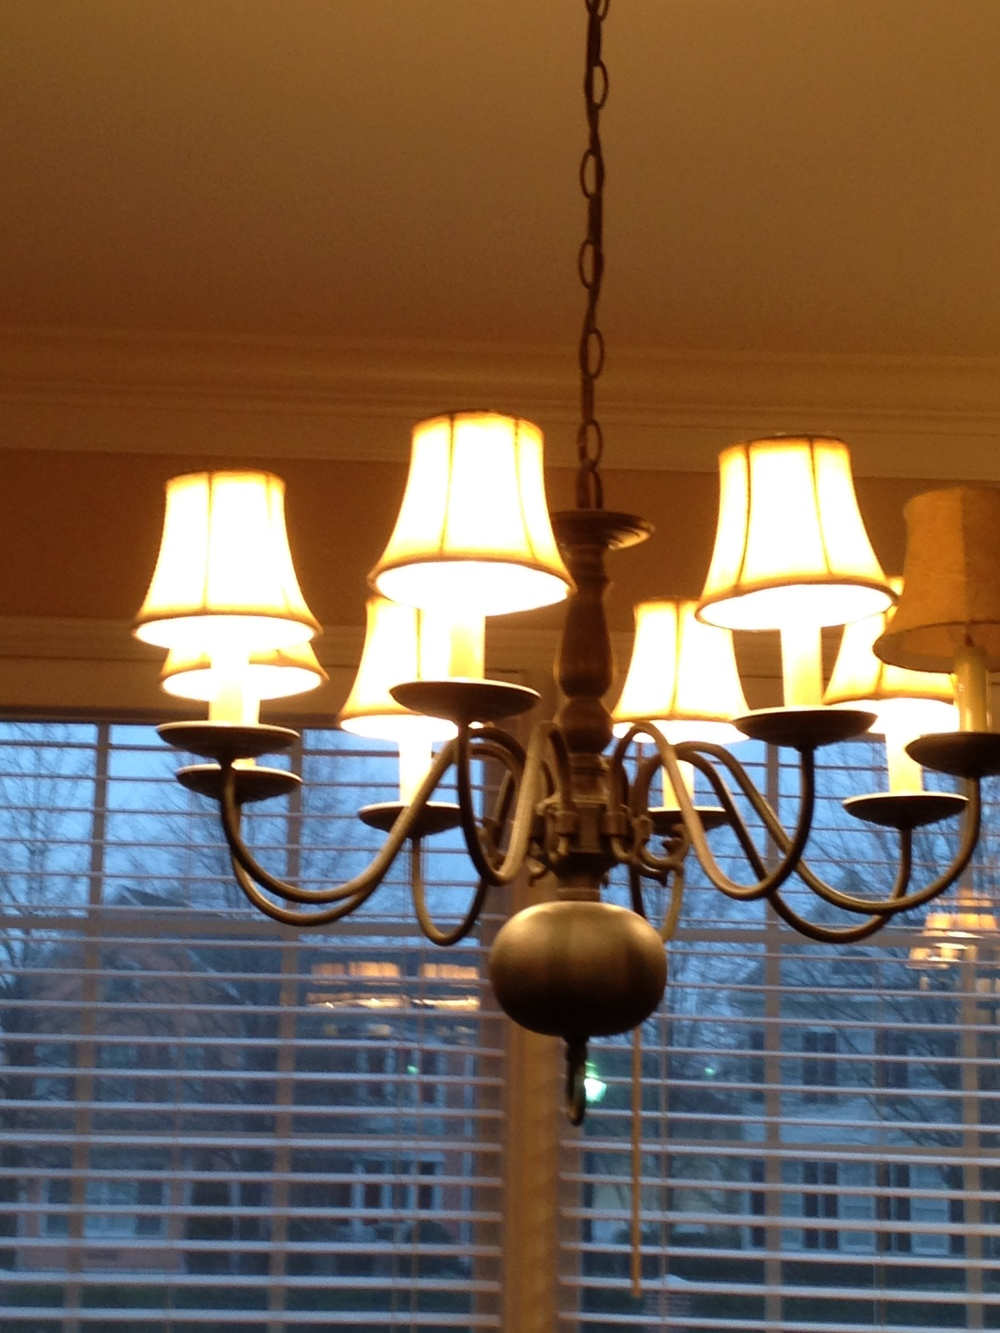 Dining Room Chandelier - Before